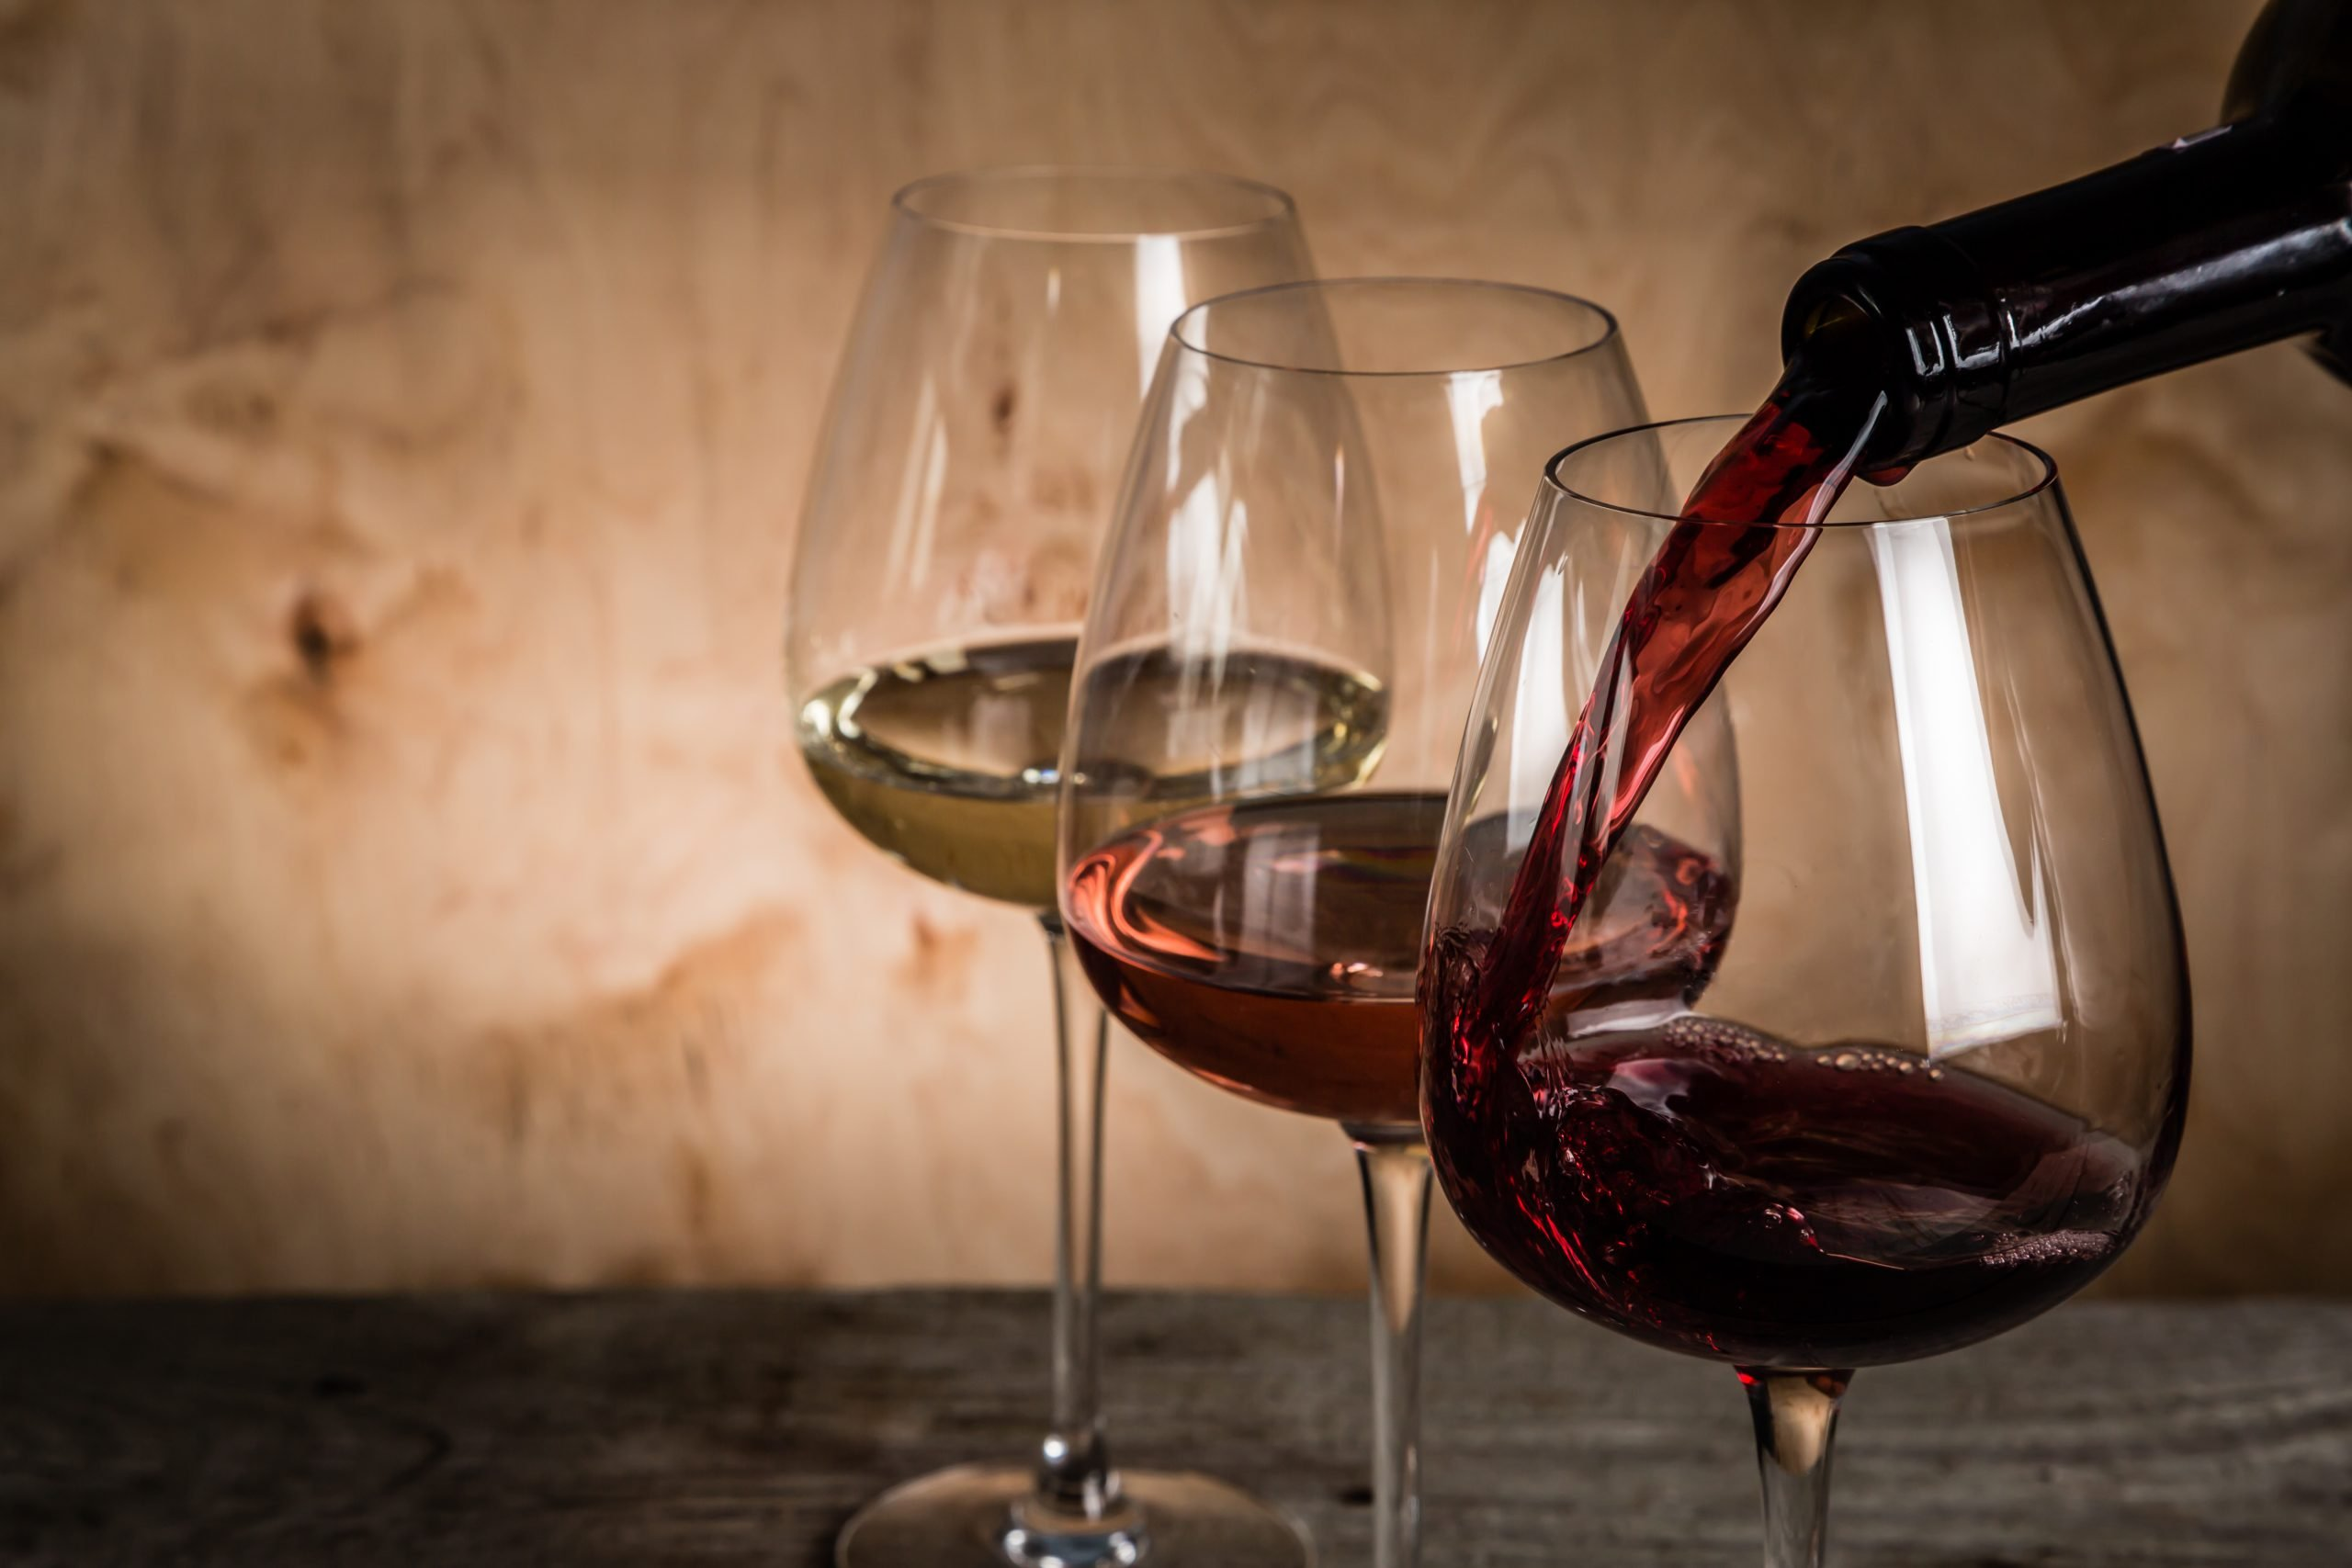 Taste The Local Wines On The Wine And Oyster Tasting Experience At The Pelješac Peninsula